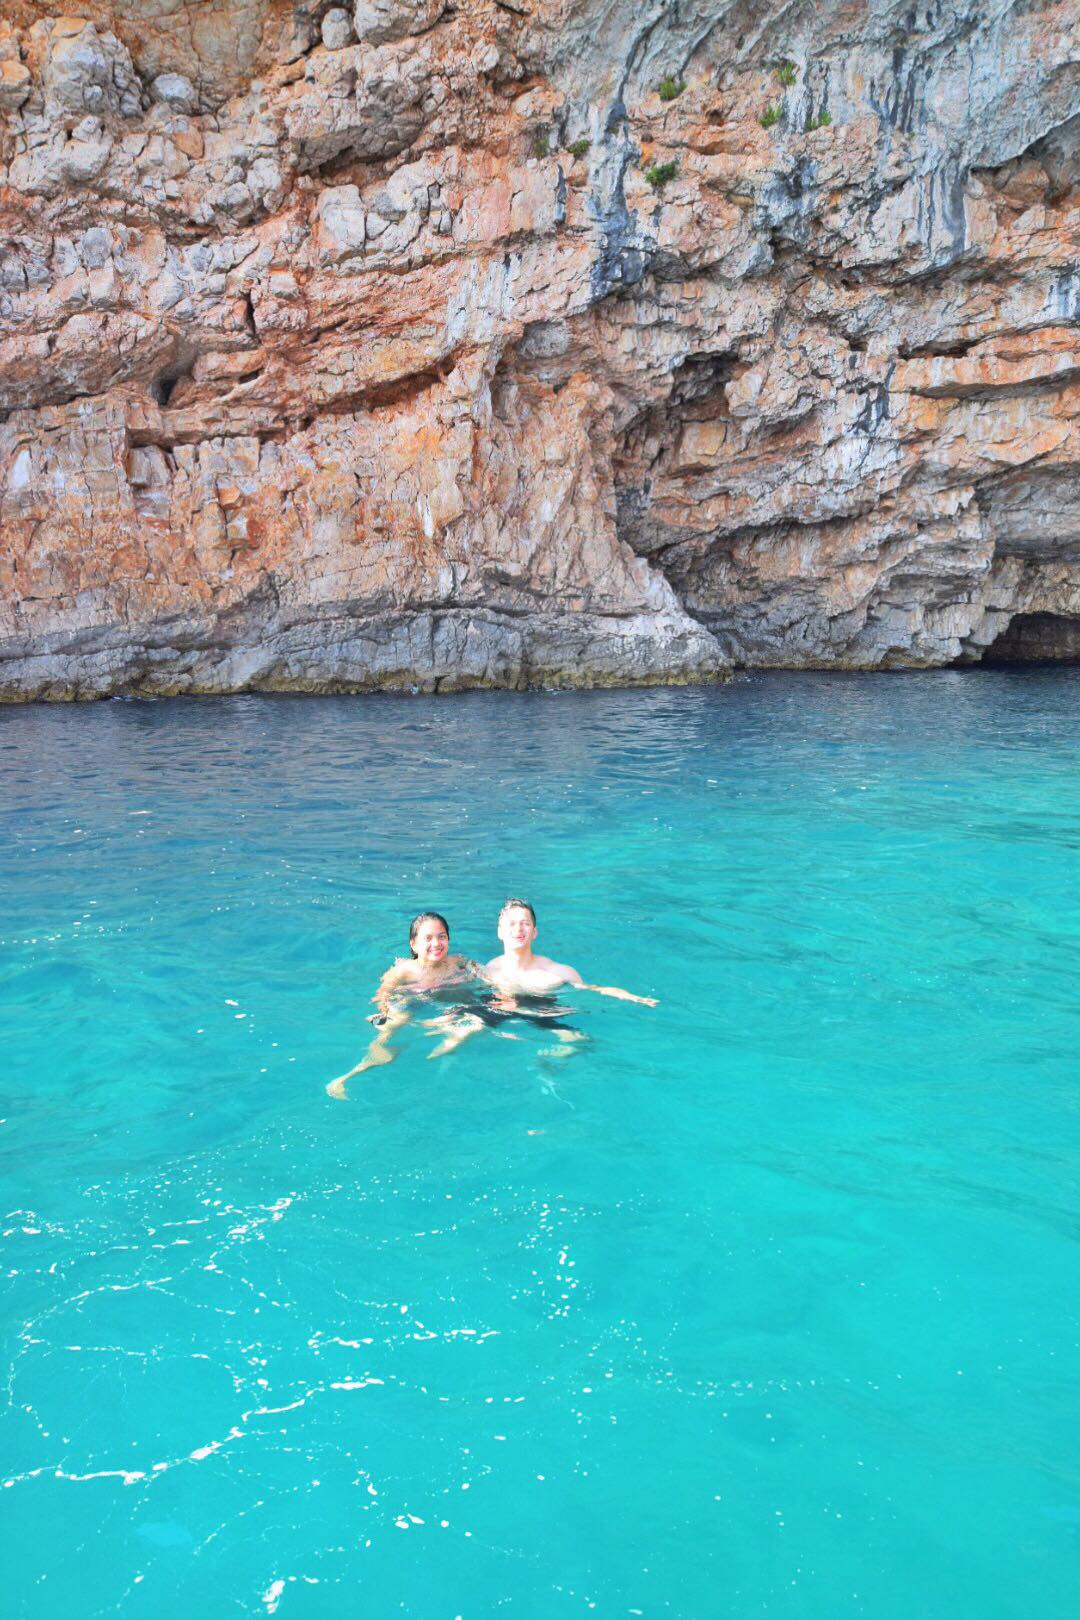 Kach Solo Travels Day 7: Sailing in Bay of Kotor with Ilija and Natasha of Montenegro Outdoors